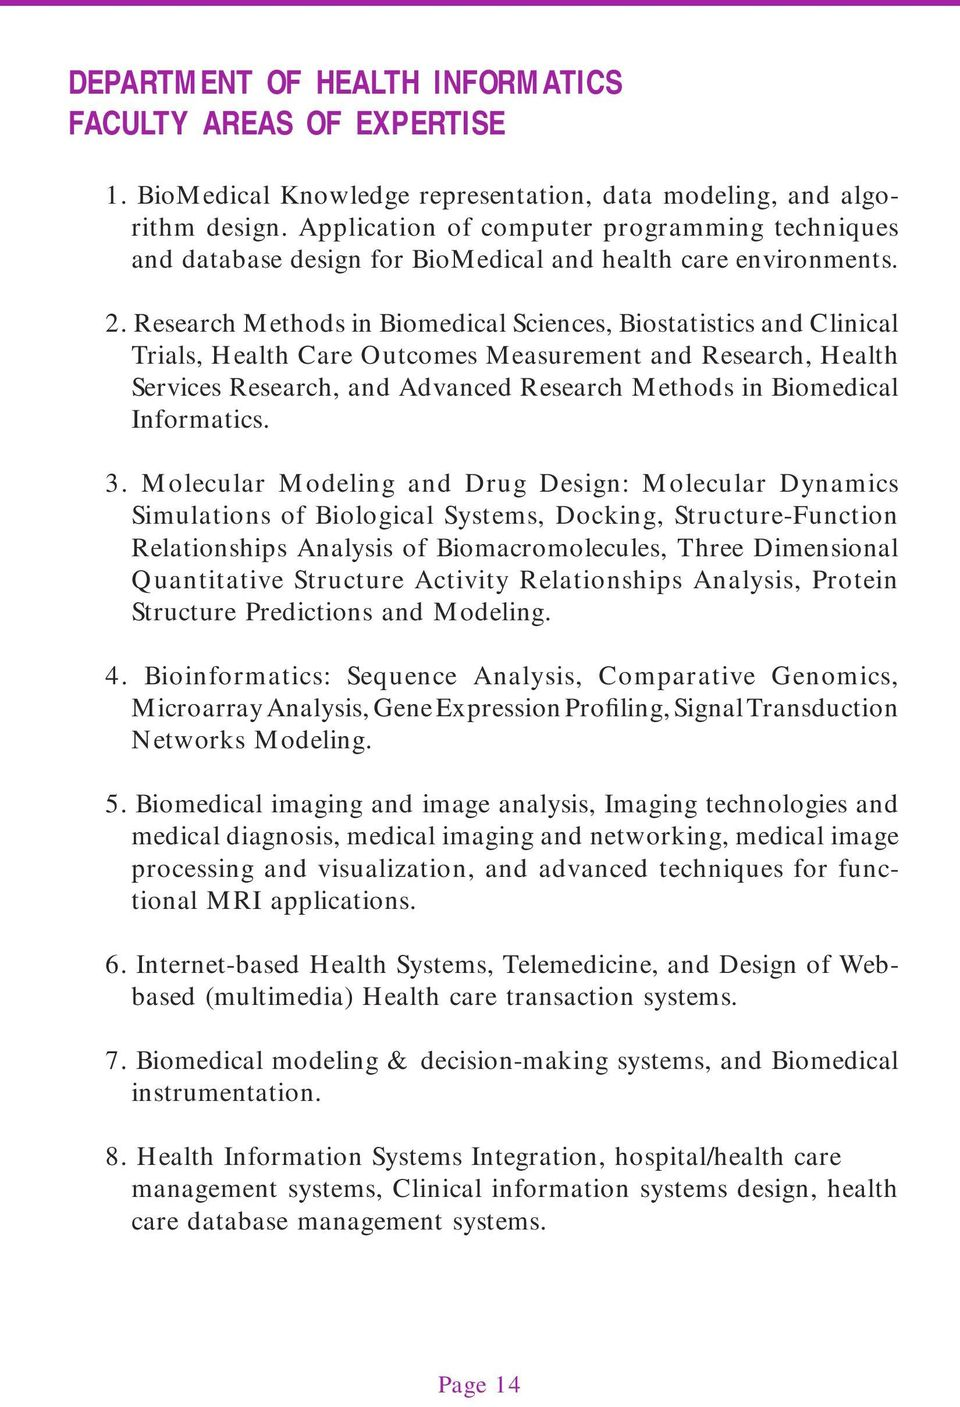 Research Methods in Biomedical Sciences, Biostatistics and Clinical Trials, Health Care Outcomes Measurement and Research, Health Services Research, and Advanced Research Methods in Biomedical